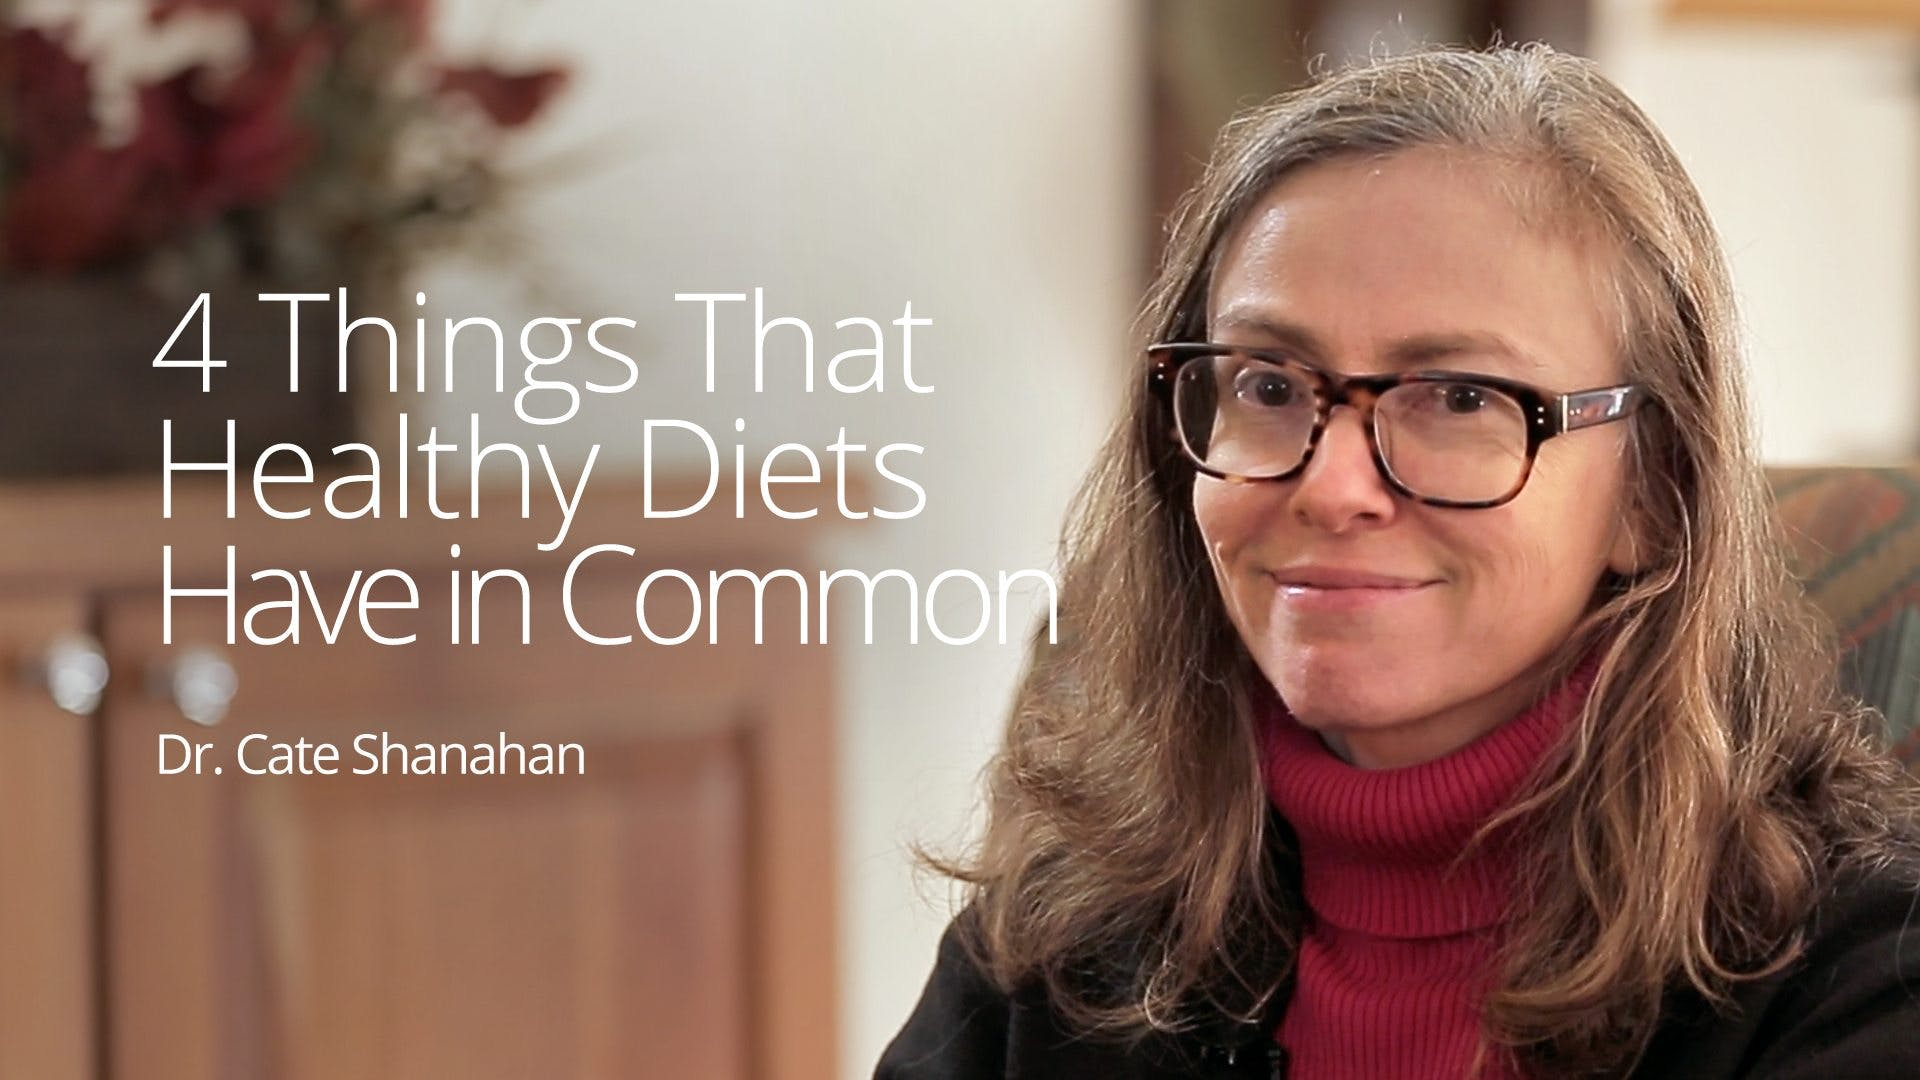 Four Things Healthy Diets Have in Common